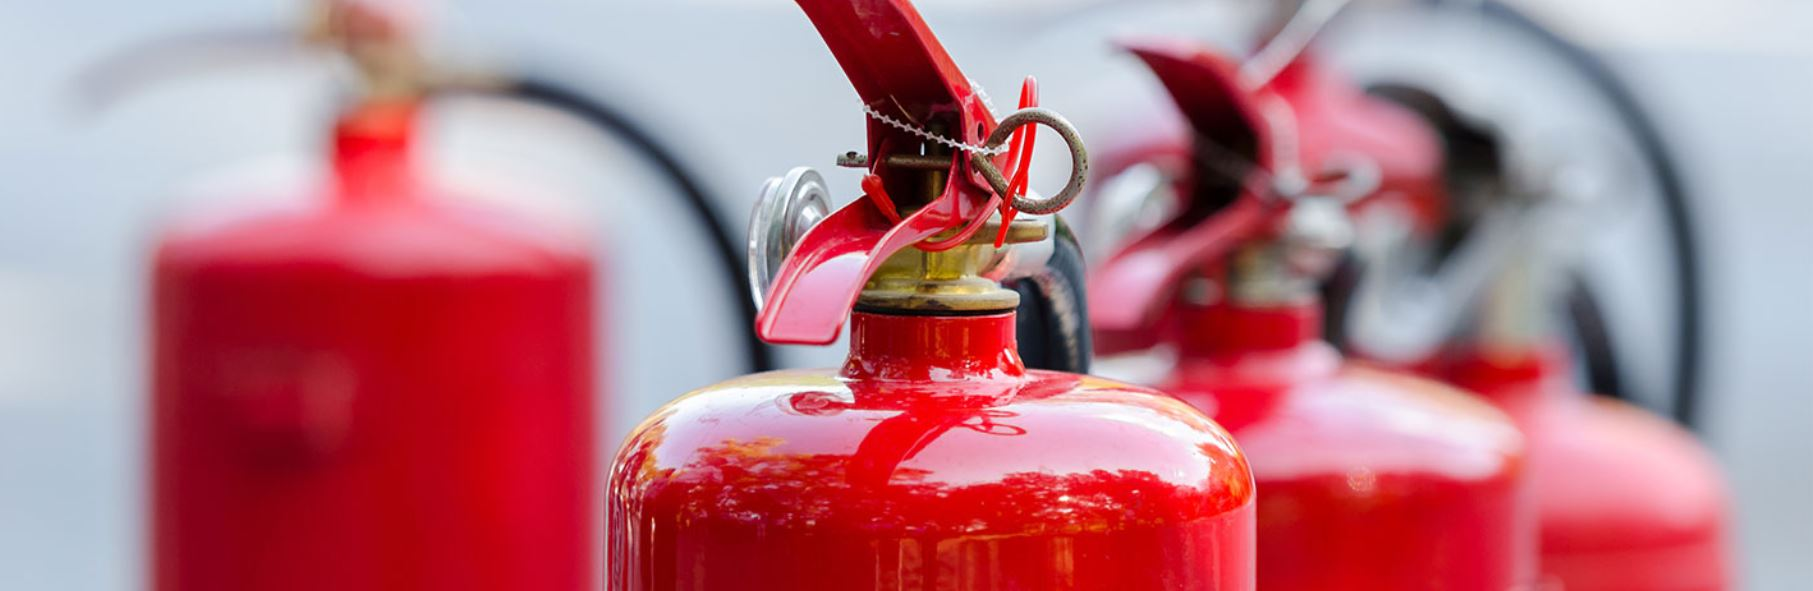 Approved Fire Protection Co. reviews | Fire Protection Services at 114 St Nicholas Ave - South Plainfield NJ